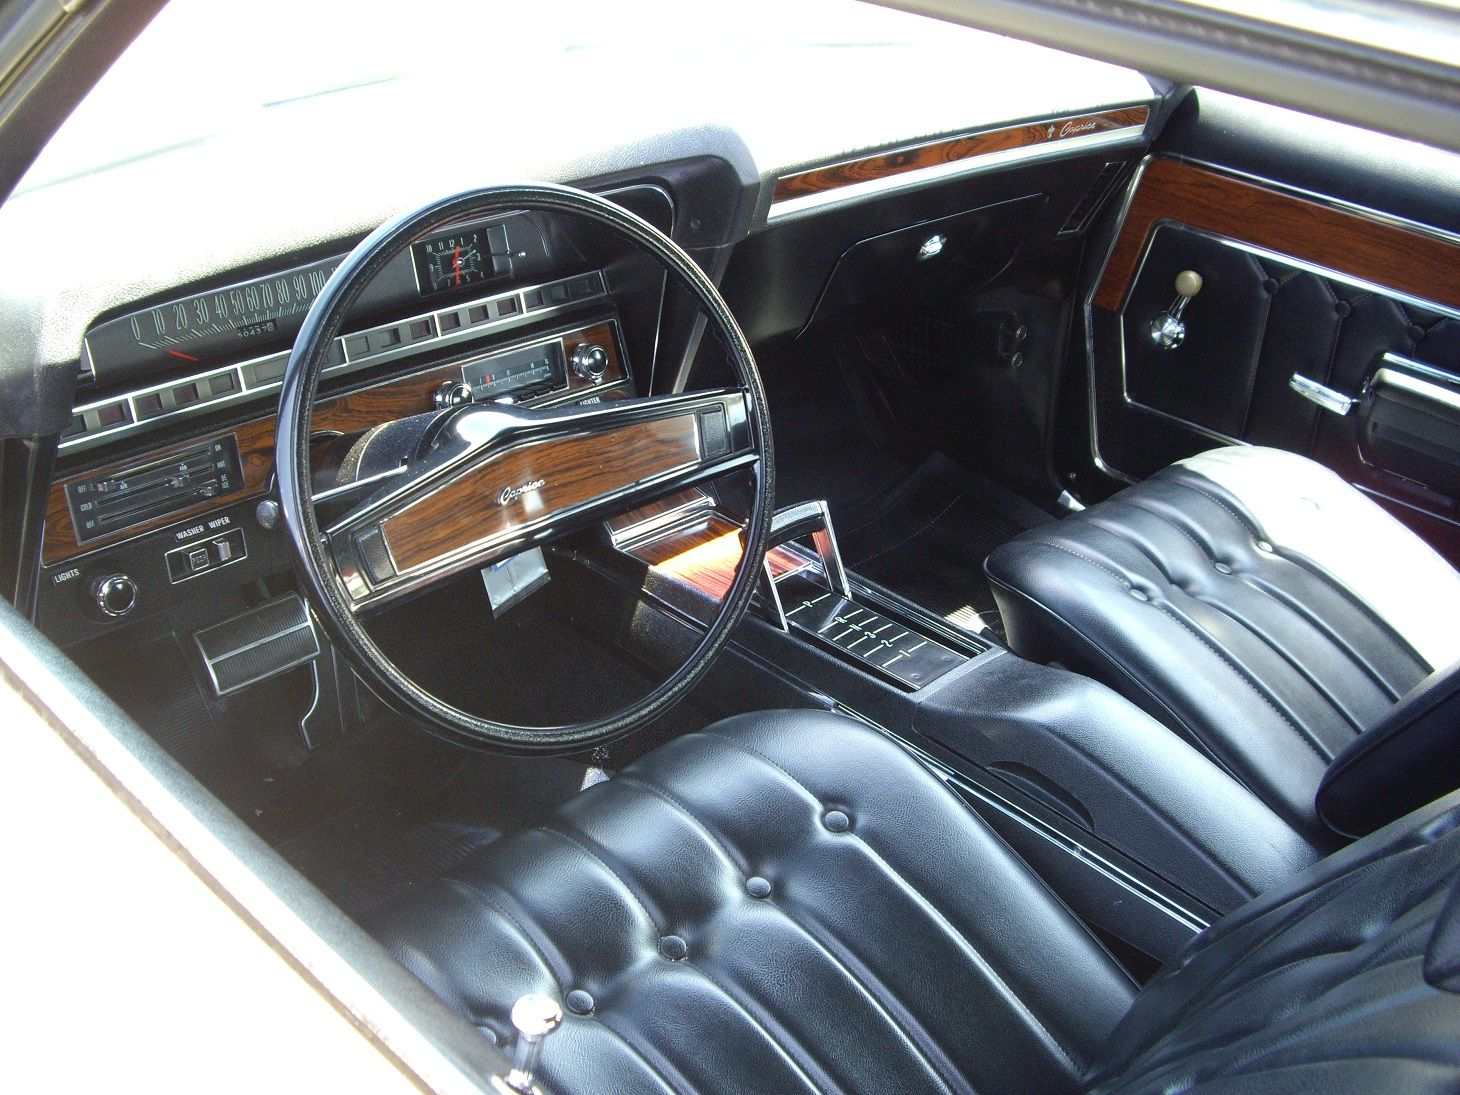 1969 chevrolet caprice interior with strato bucket seats classic car interiors pinterest. Black Bedroom Furniture Sets. Home Design Ideas